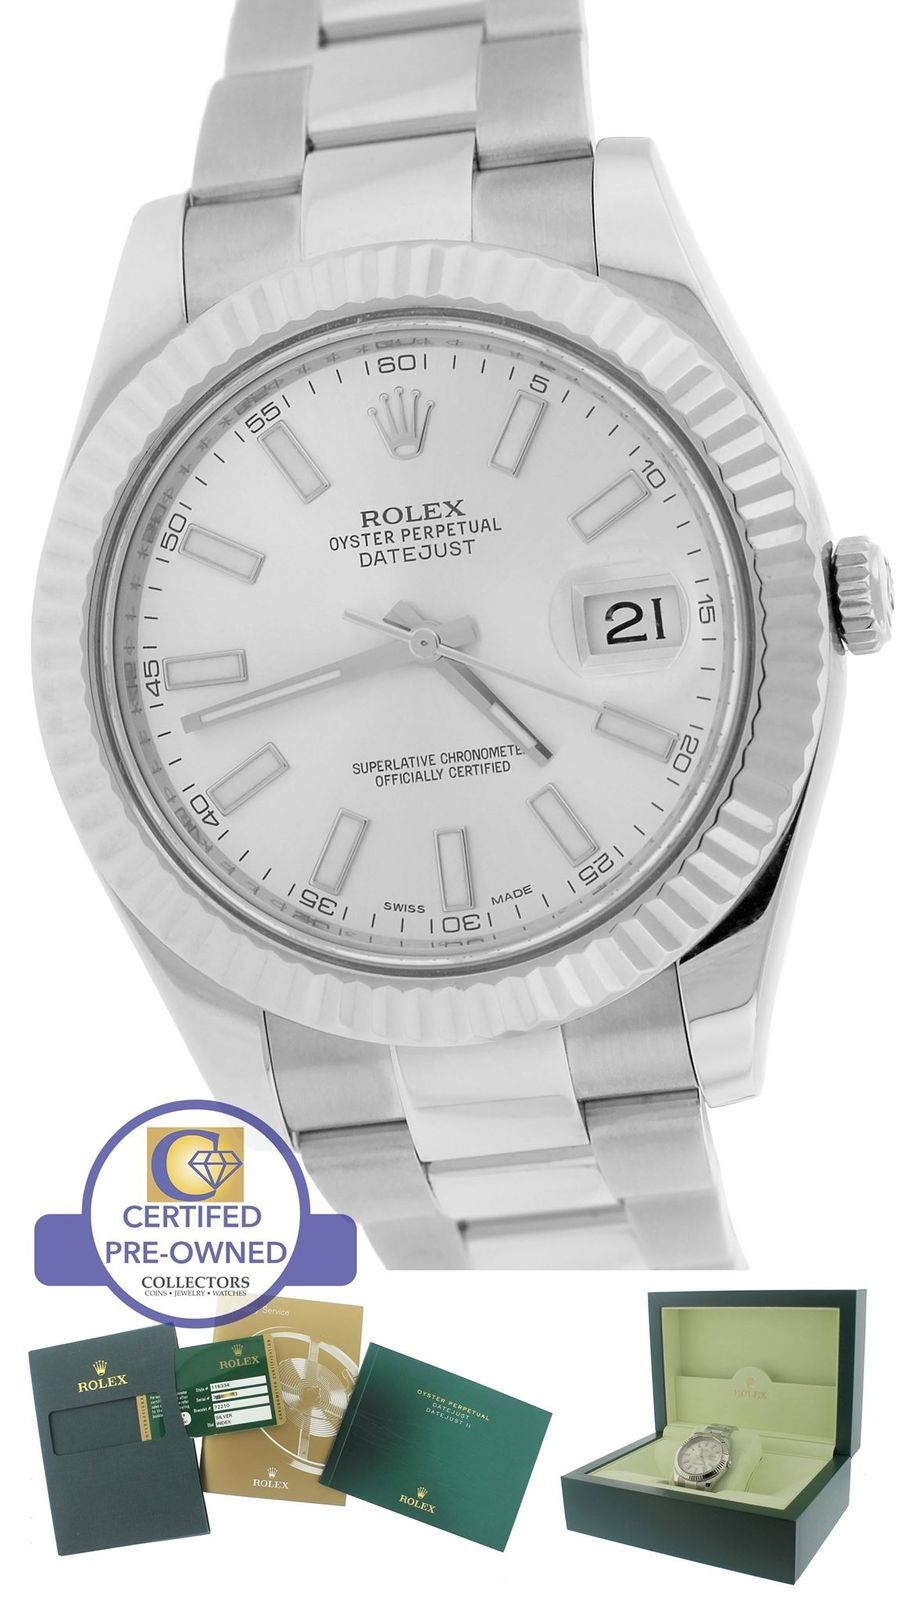 MINT 2014 Rolex Datejust II 2 Silver 41MM 116334 Stainless 18K White Gold Watch